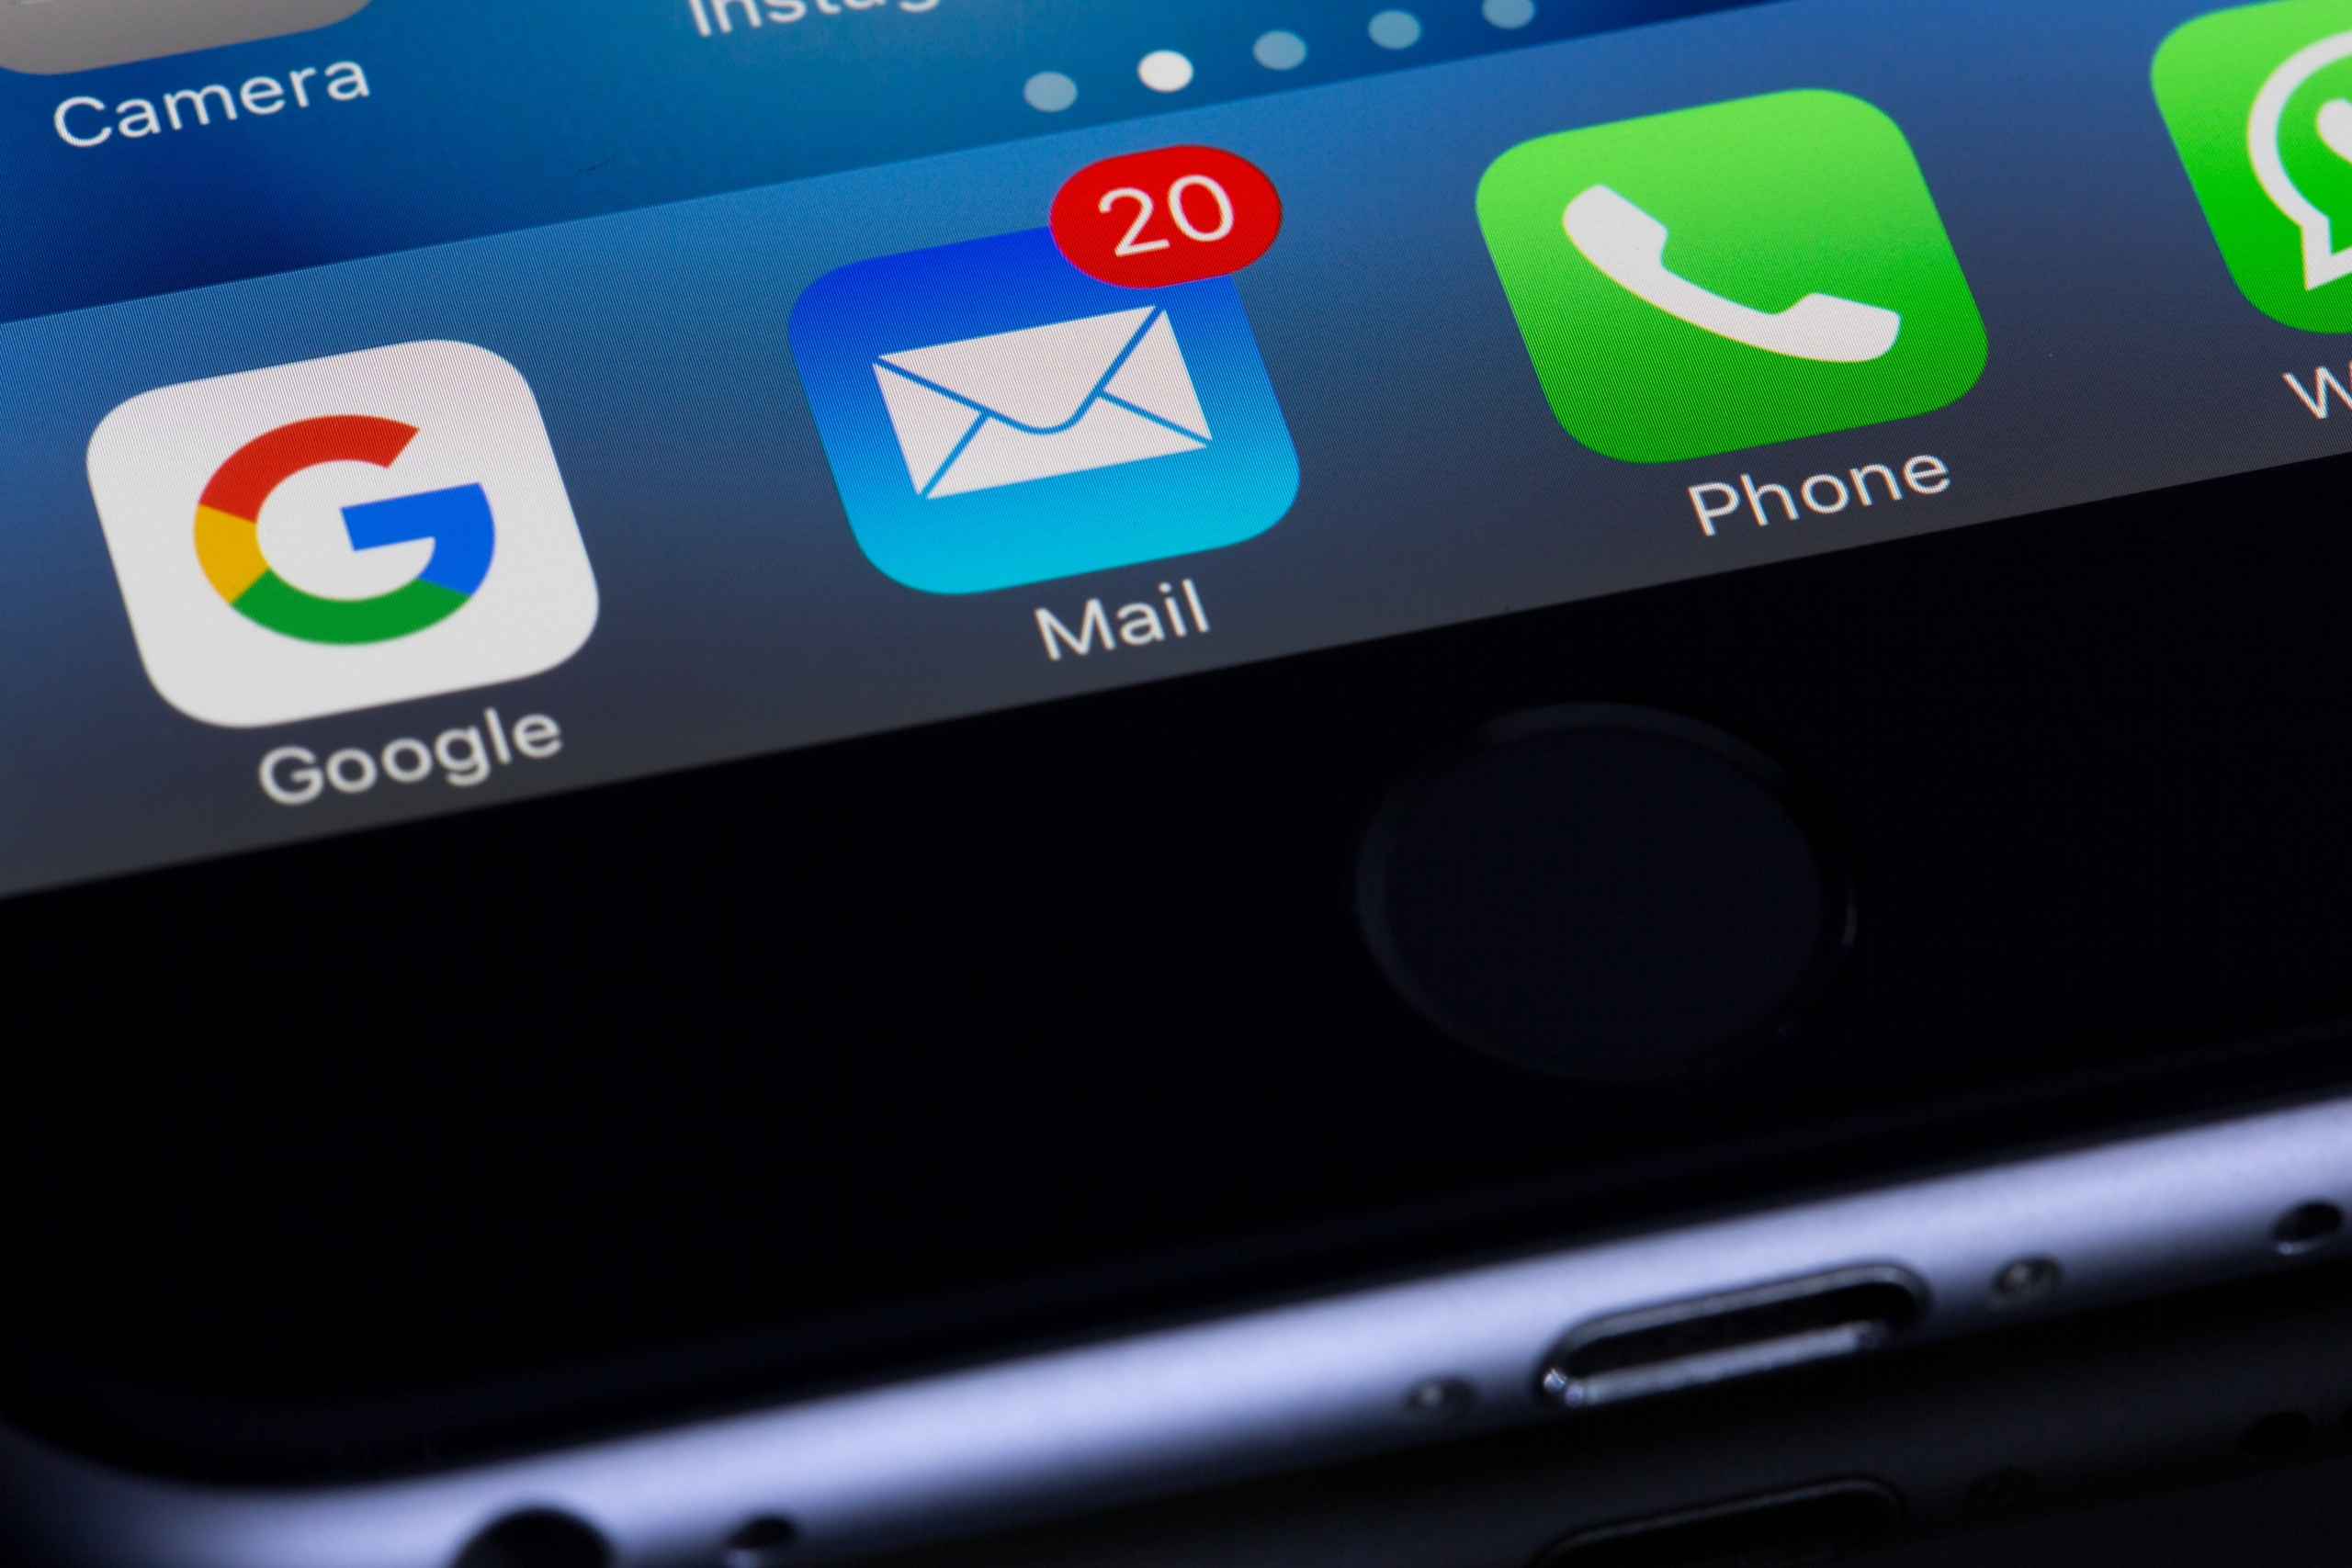 mail image on phone